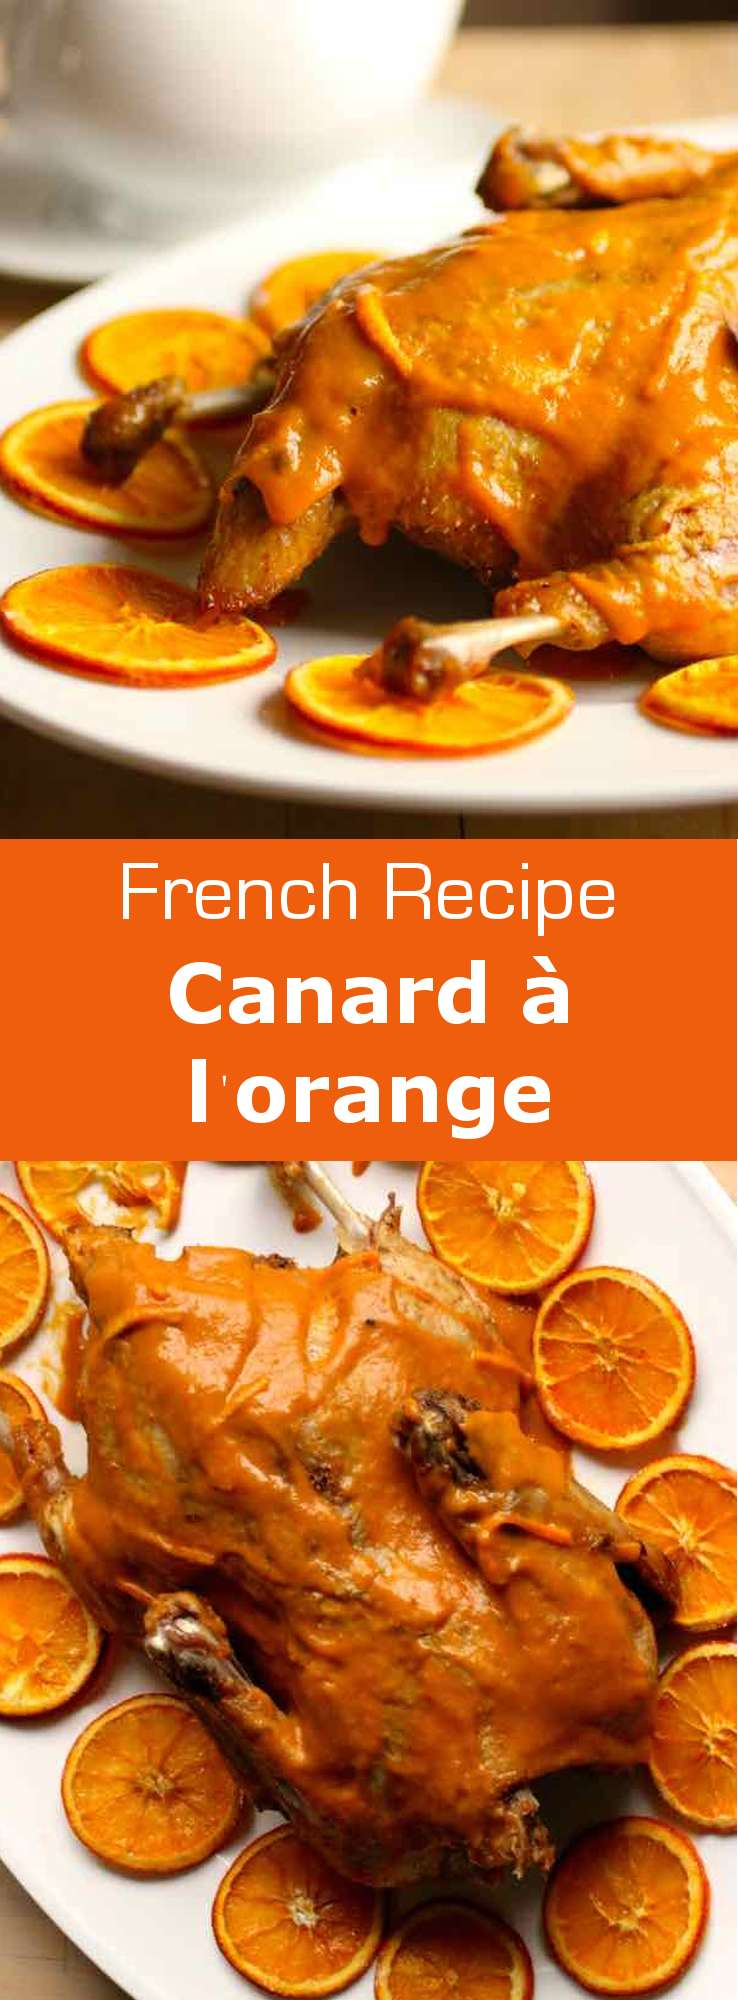 Duck a l'orange is a sweet and sour classic French dish consisting in cooked duck that is served with a tangy orange-based sauce. #French #196flavors